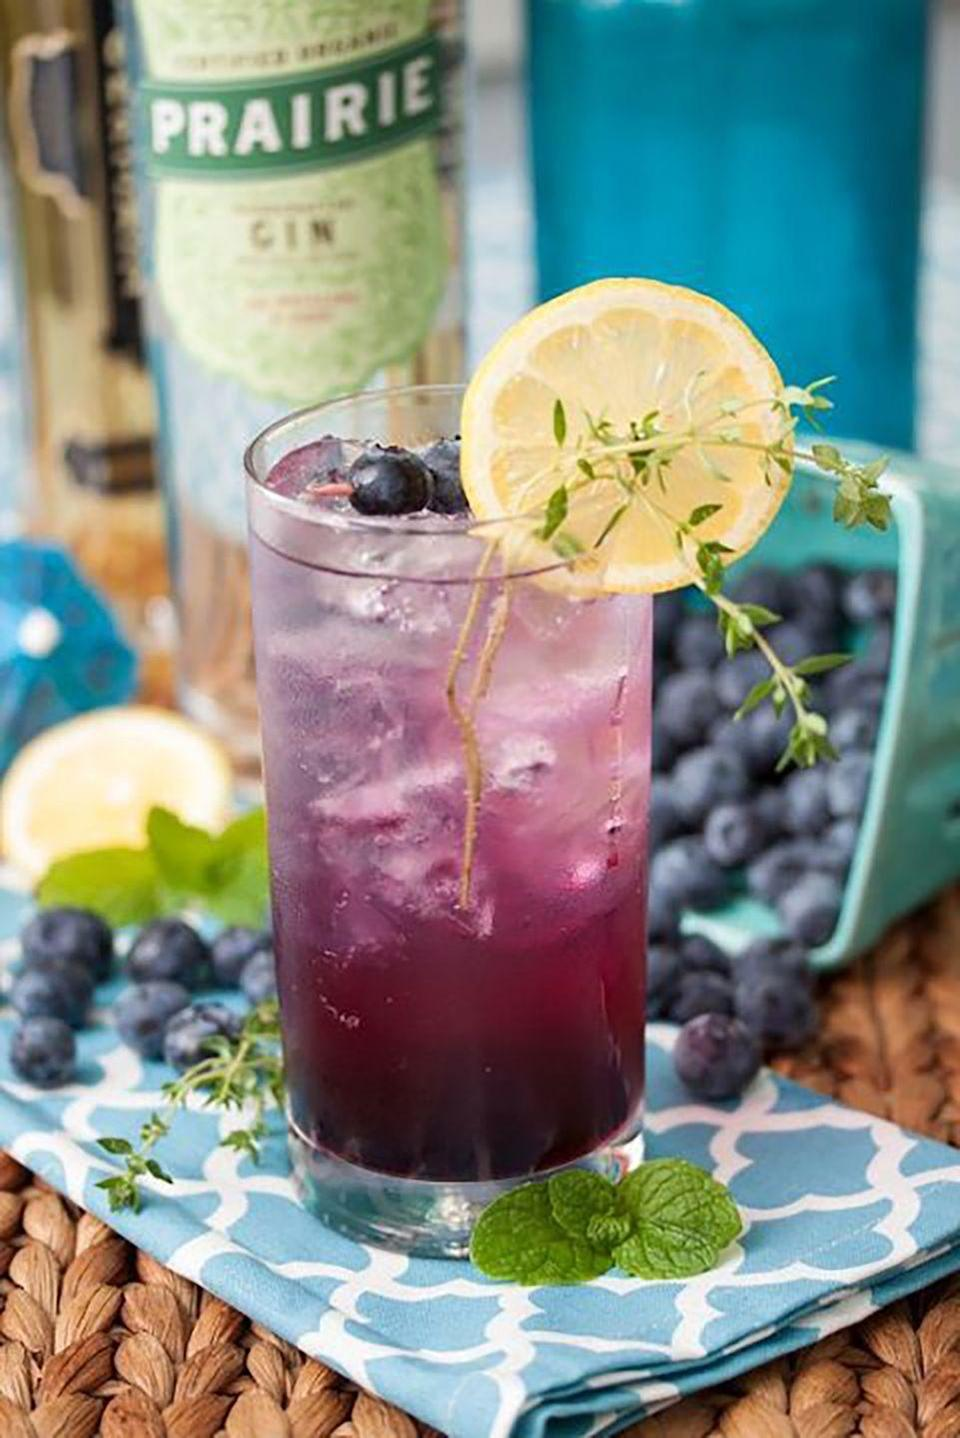 "<p><strong>Ingredients:</strong><br></p><p>1 ½ oz. Prairie Organic Vodka</p><p>½ oz. Elderflower Liqueur</p><p>½ oz. Simple Syrup</p><p>Muddled Blueberries</p><p><strong>Directions:</strong></p><p>Mix all ingredients.</p><p><em>Courtesy of <a href=""https://www.prairieorganicspirits.com/products/"" rel=""nofollow noopener"" target=""_blank"" data-ylk=""slk:Prairie Organic Vodka"" class=""link rapid-noclick-resp"">Prairie Organic Vodka</a></em></p>"